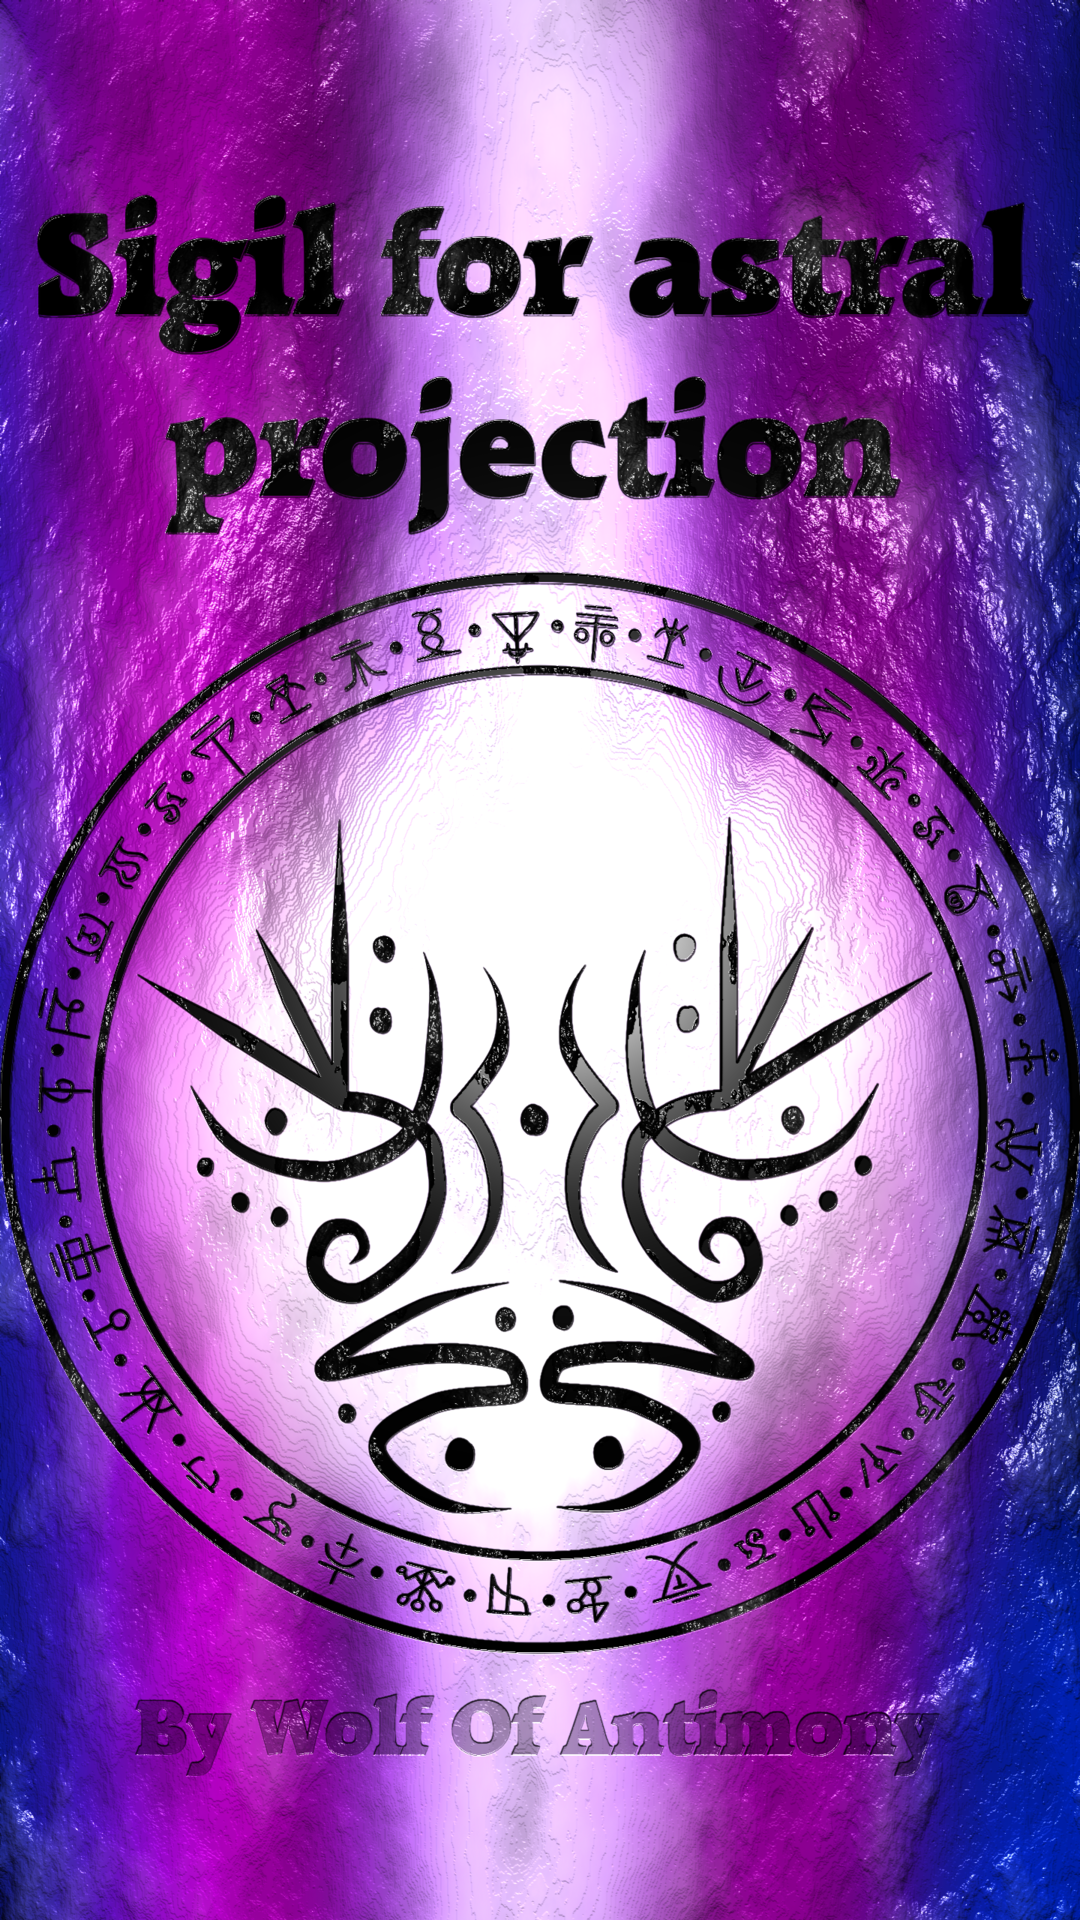 Sigil for astral projection | Cool stuff | Sigil magic, Witchcraft